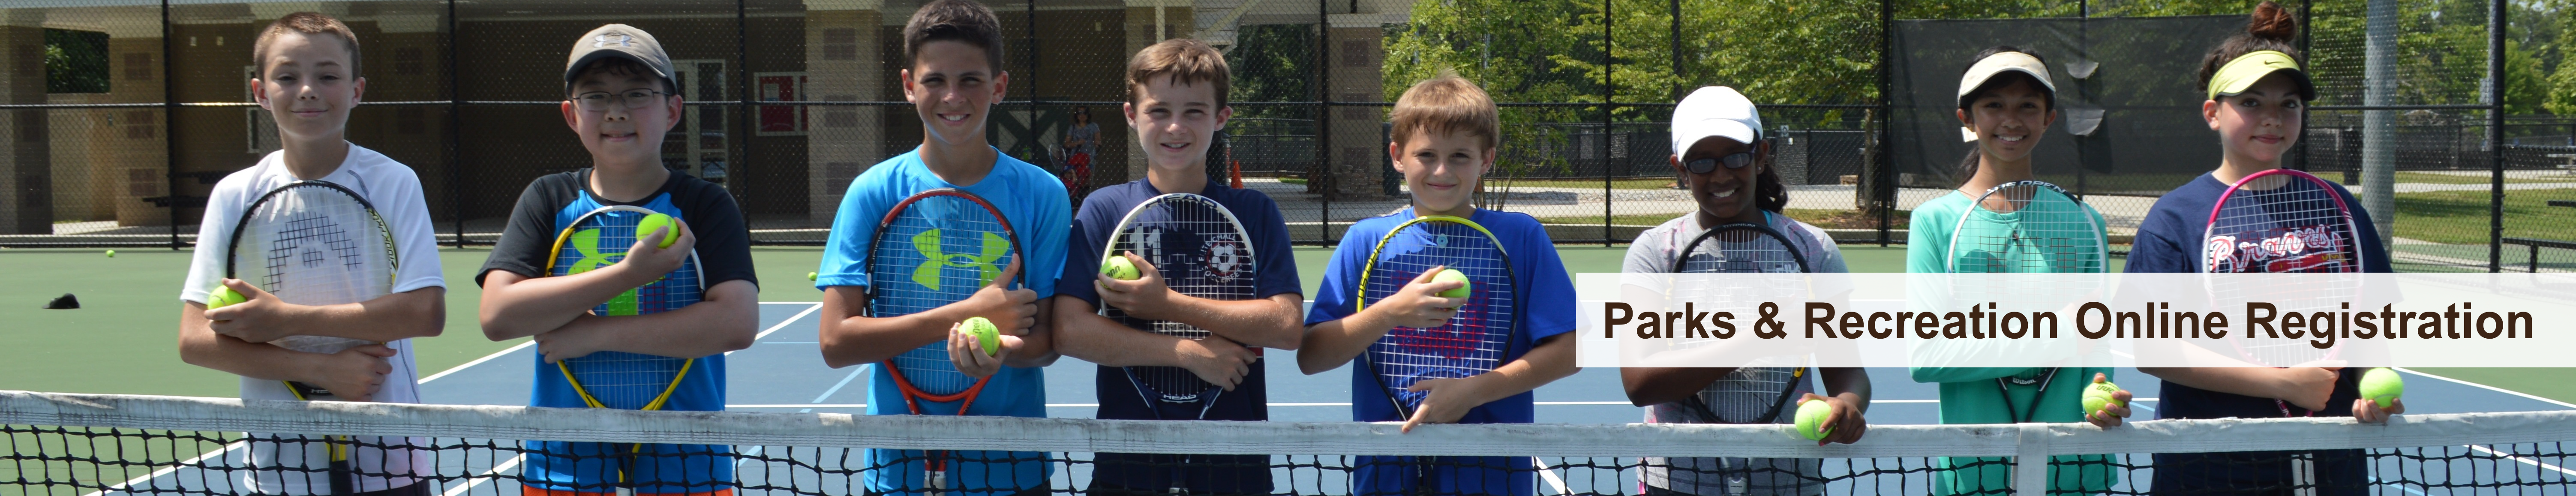 Young participants in Tennis Program and Text reading Parks and Recreation Online Registration